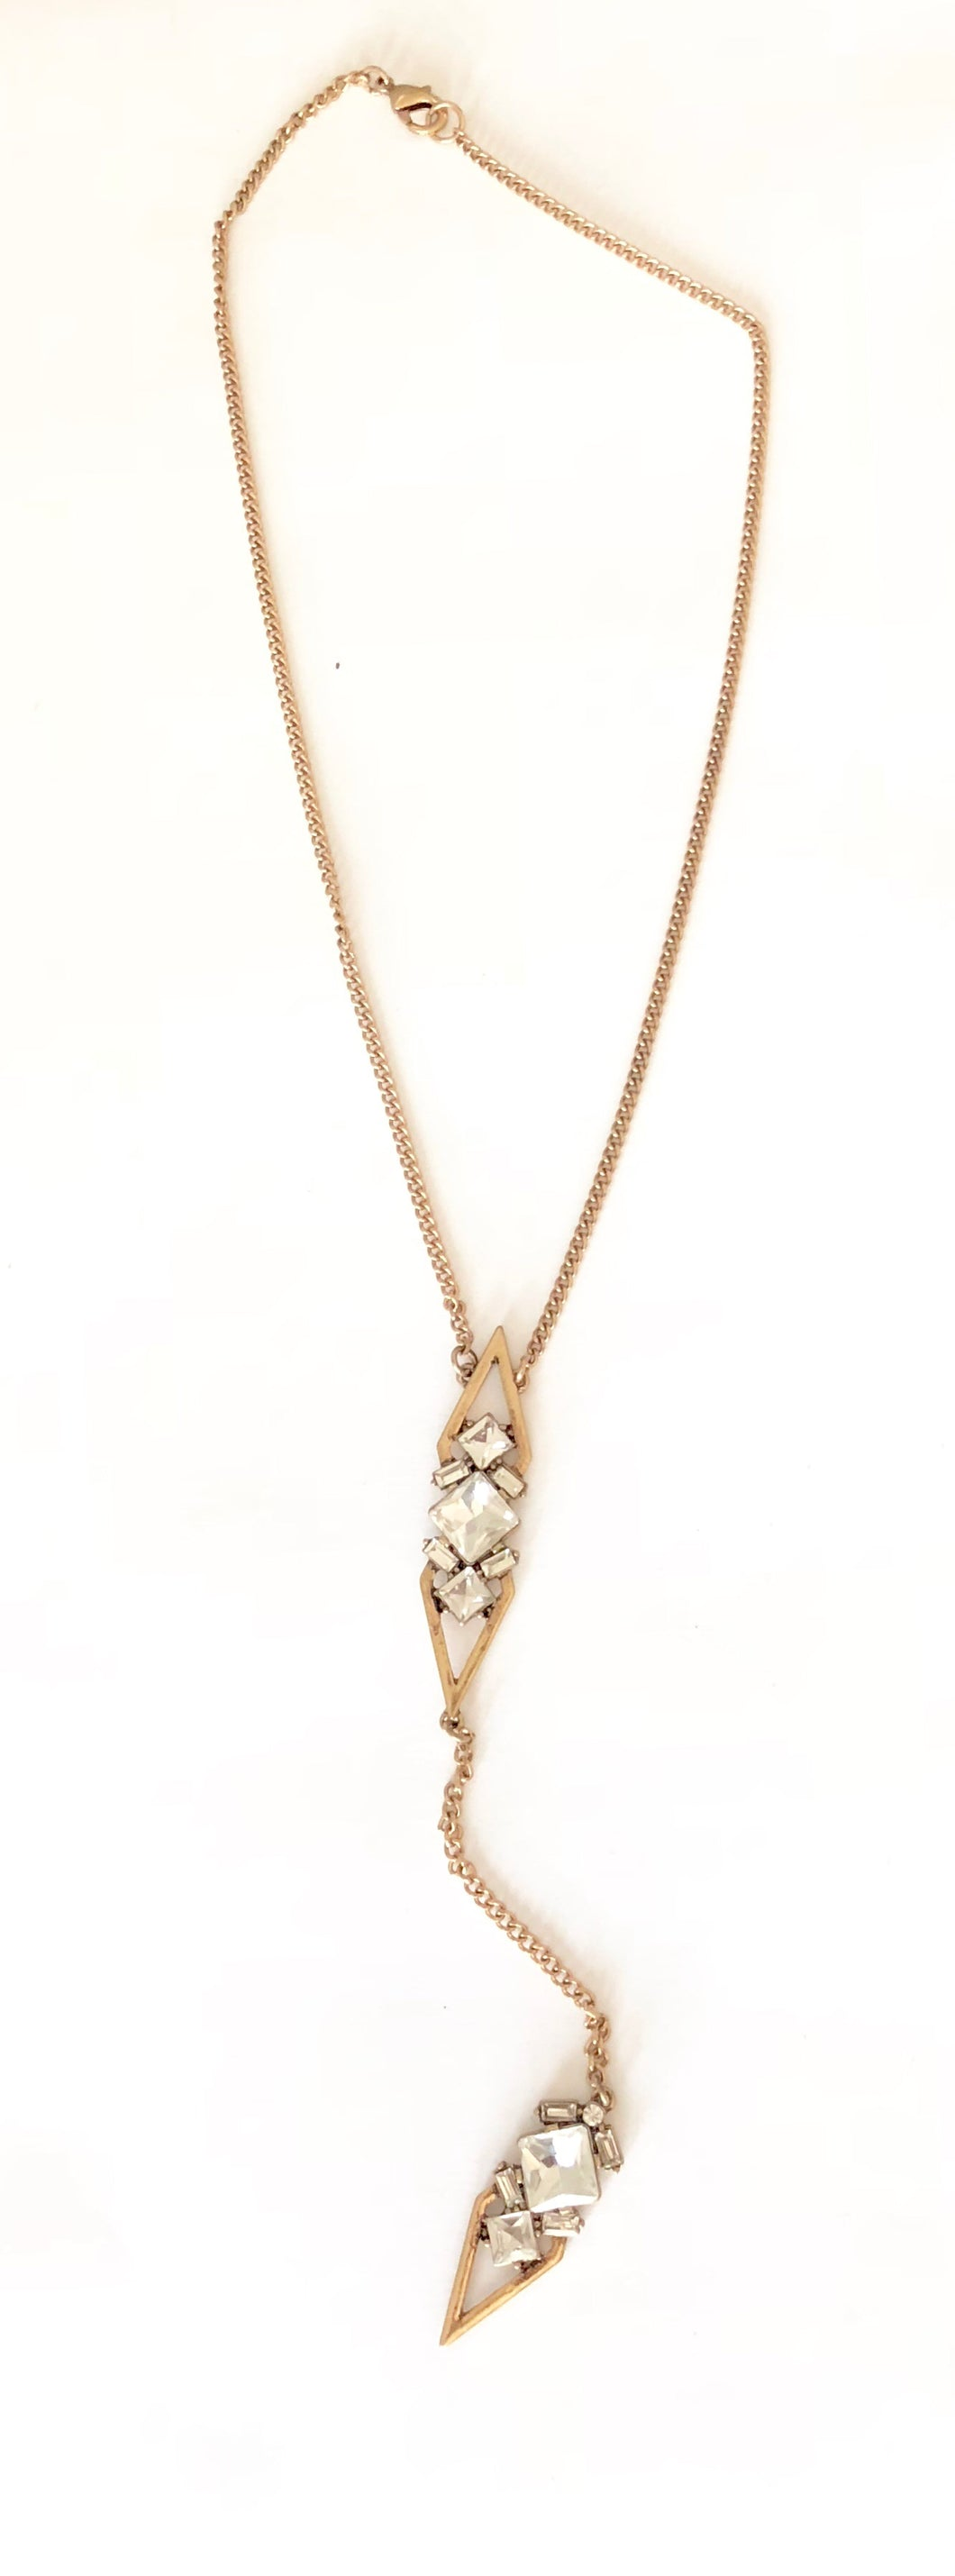 Gold & Crystal Double Pendant Necklace